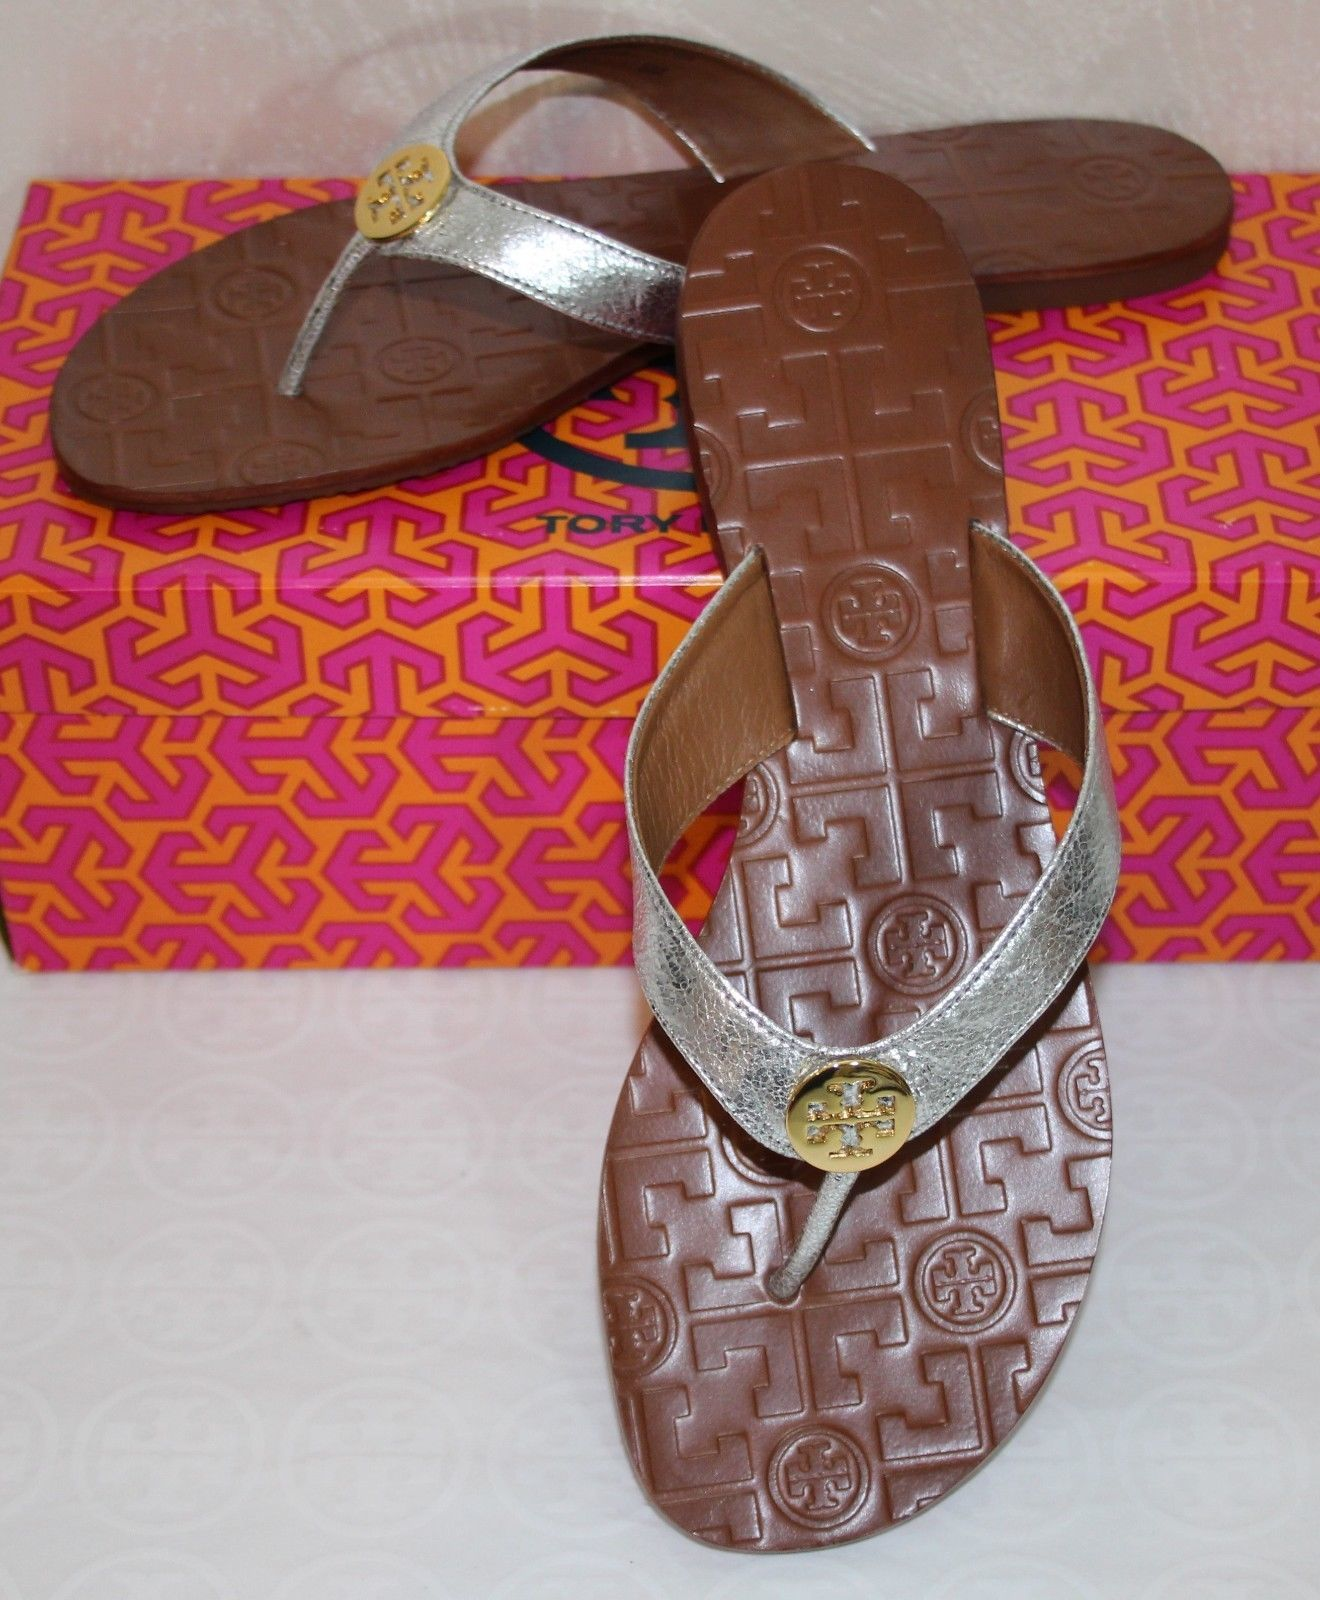 285734f2d38a6 57. 57. Previous. Tory Burch Thora Size 8 Metallic Silver Leather Flat  Thong Sandals · Tory Burch ...